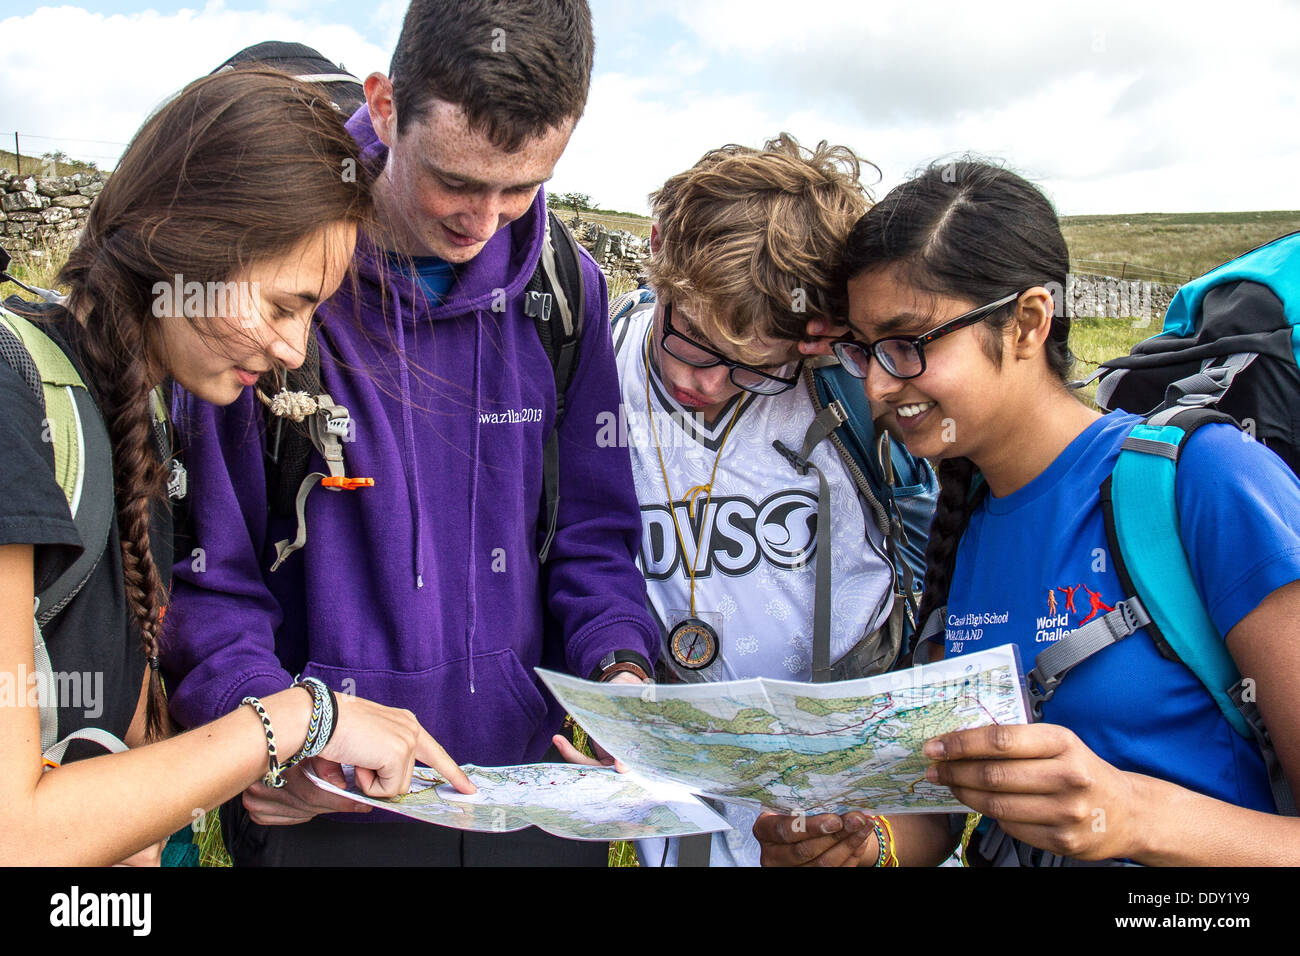 A mixed group of young people read a map and navigate in the countryside - Stock Image